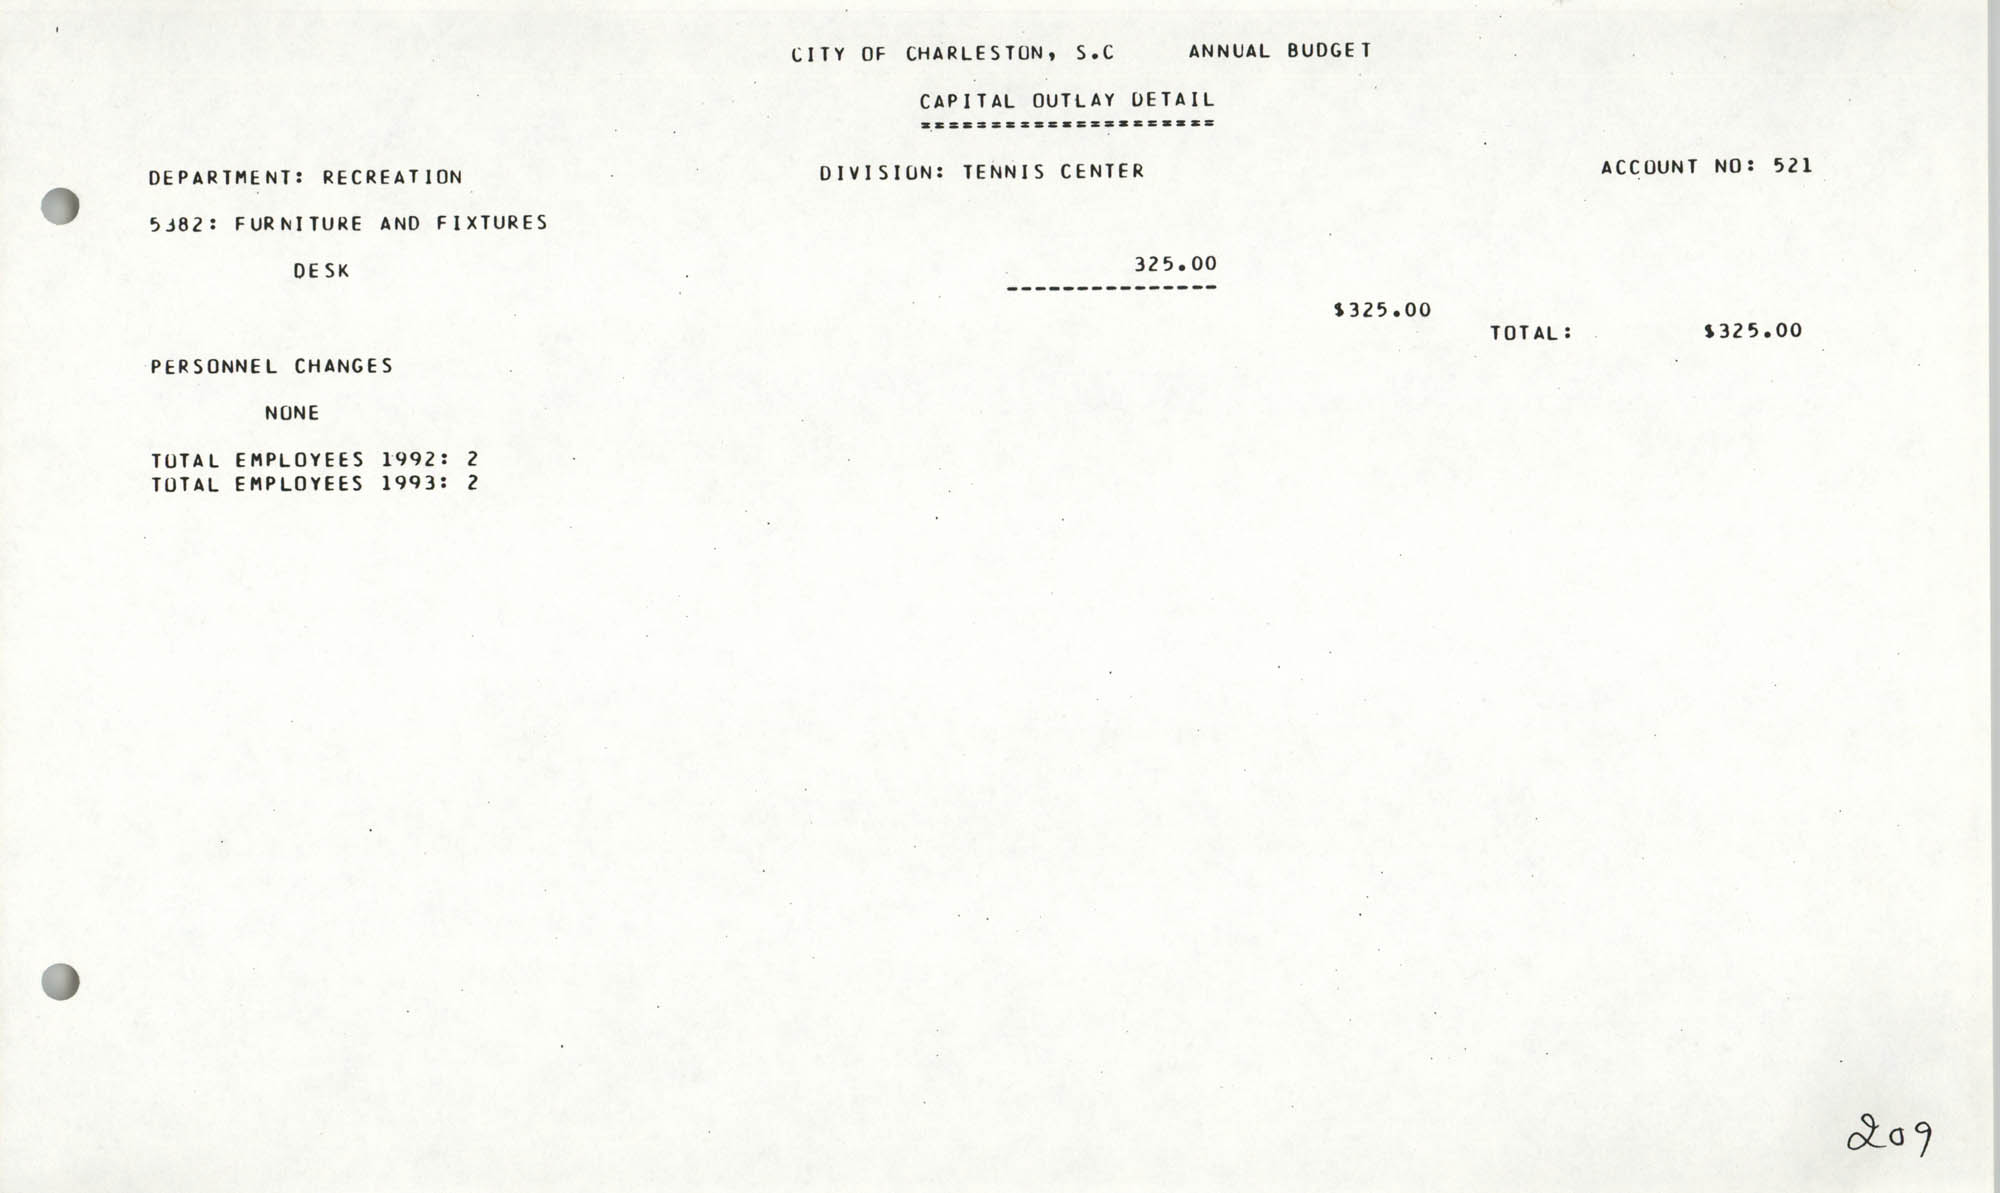 The City Council of Charleston, South Carolina, 1993 Budget, Page 209